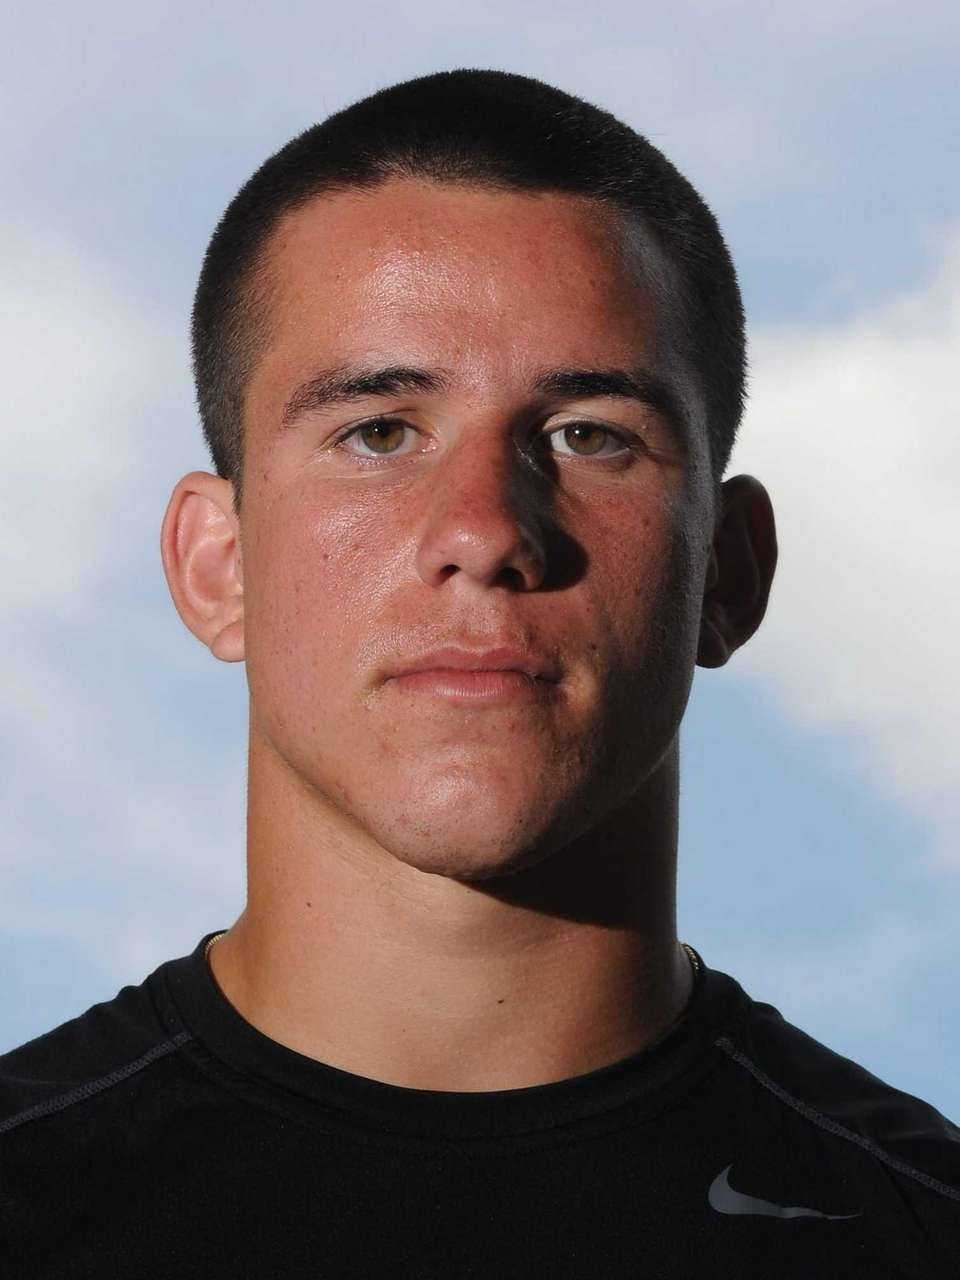 PETER BRASILE Wantagh A menace at linebacker, a